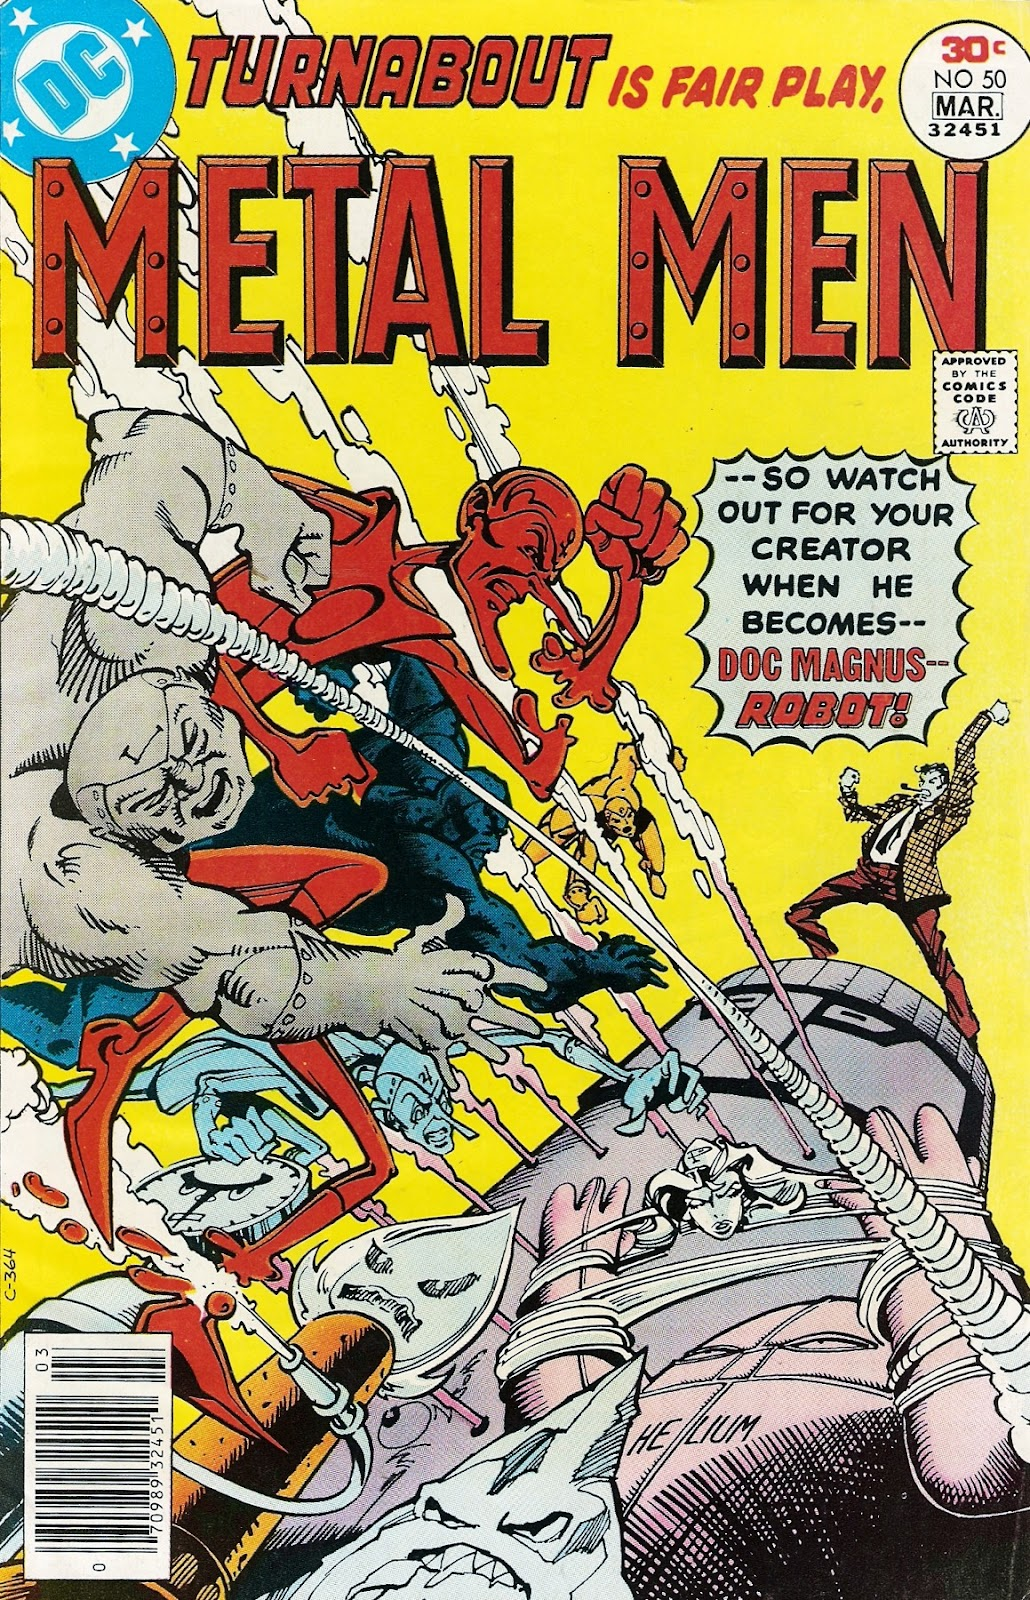 Metal Men (1963) issue 50 - Page 1